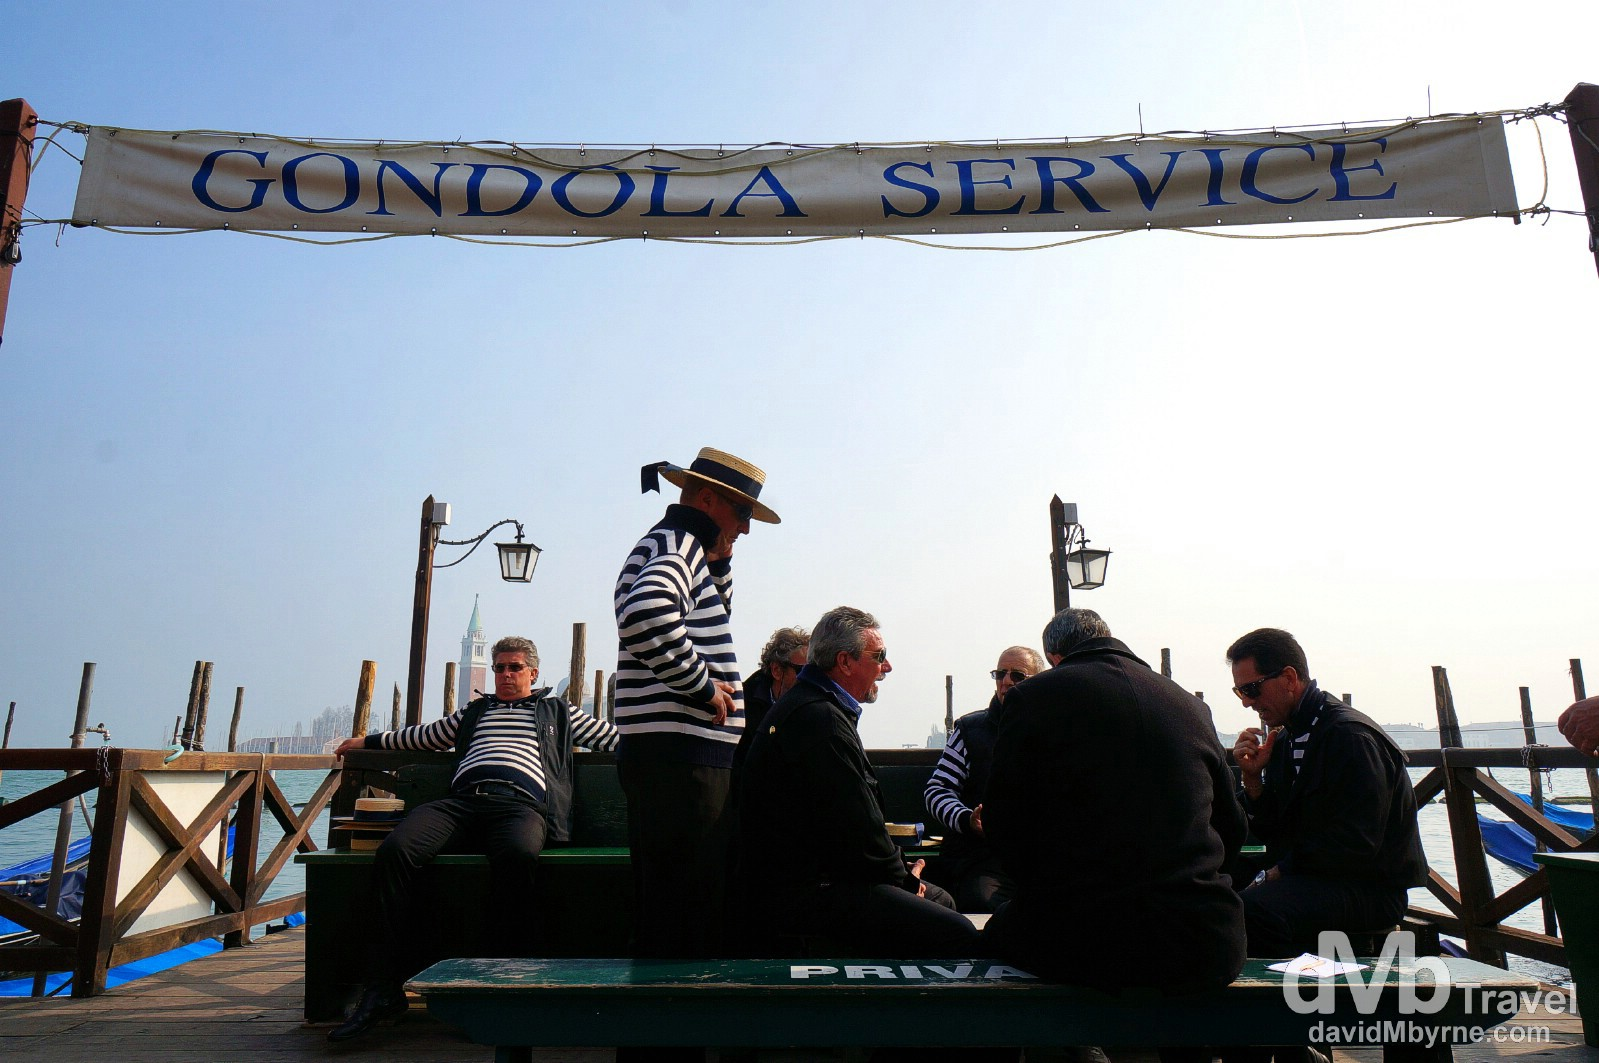 Gondola Service downtime by the Grand Canal off Piazzetta San Marco, Venice, Italy. March 18th, 2014.